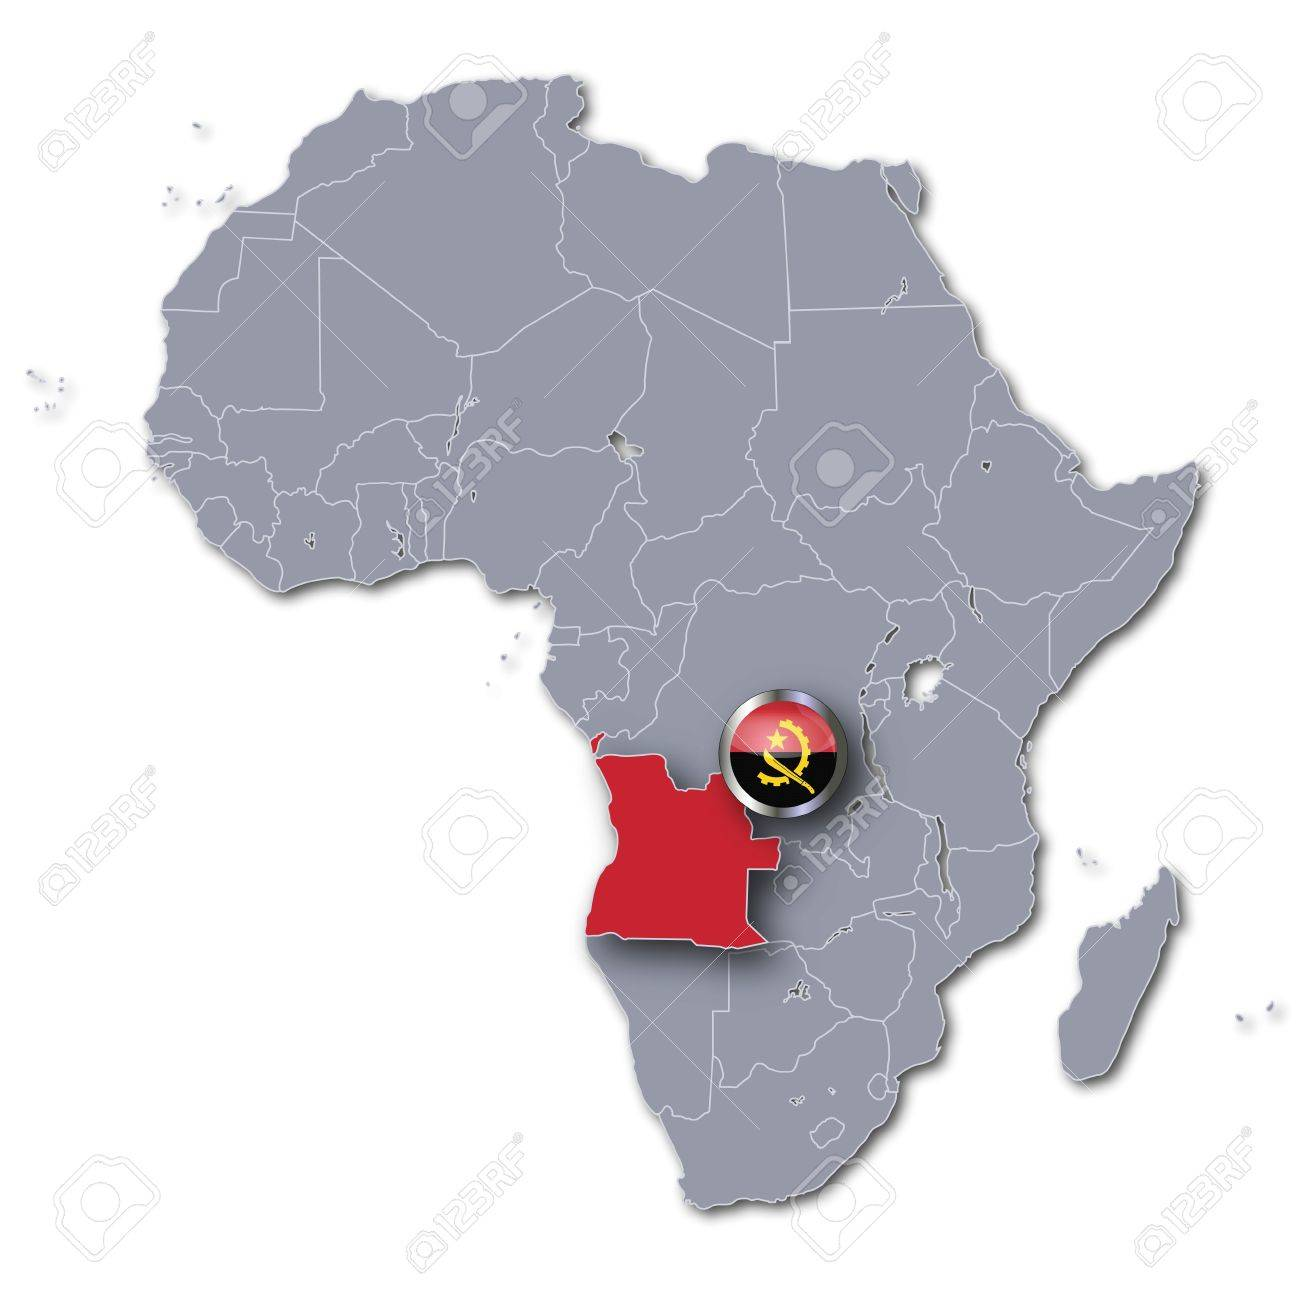 Angola On Africa Map.Africa Map Angola Stock Photo Picture And Royalty Free Image Image